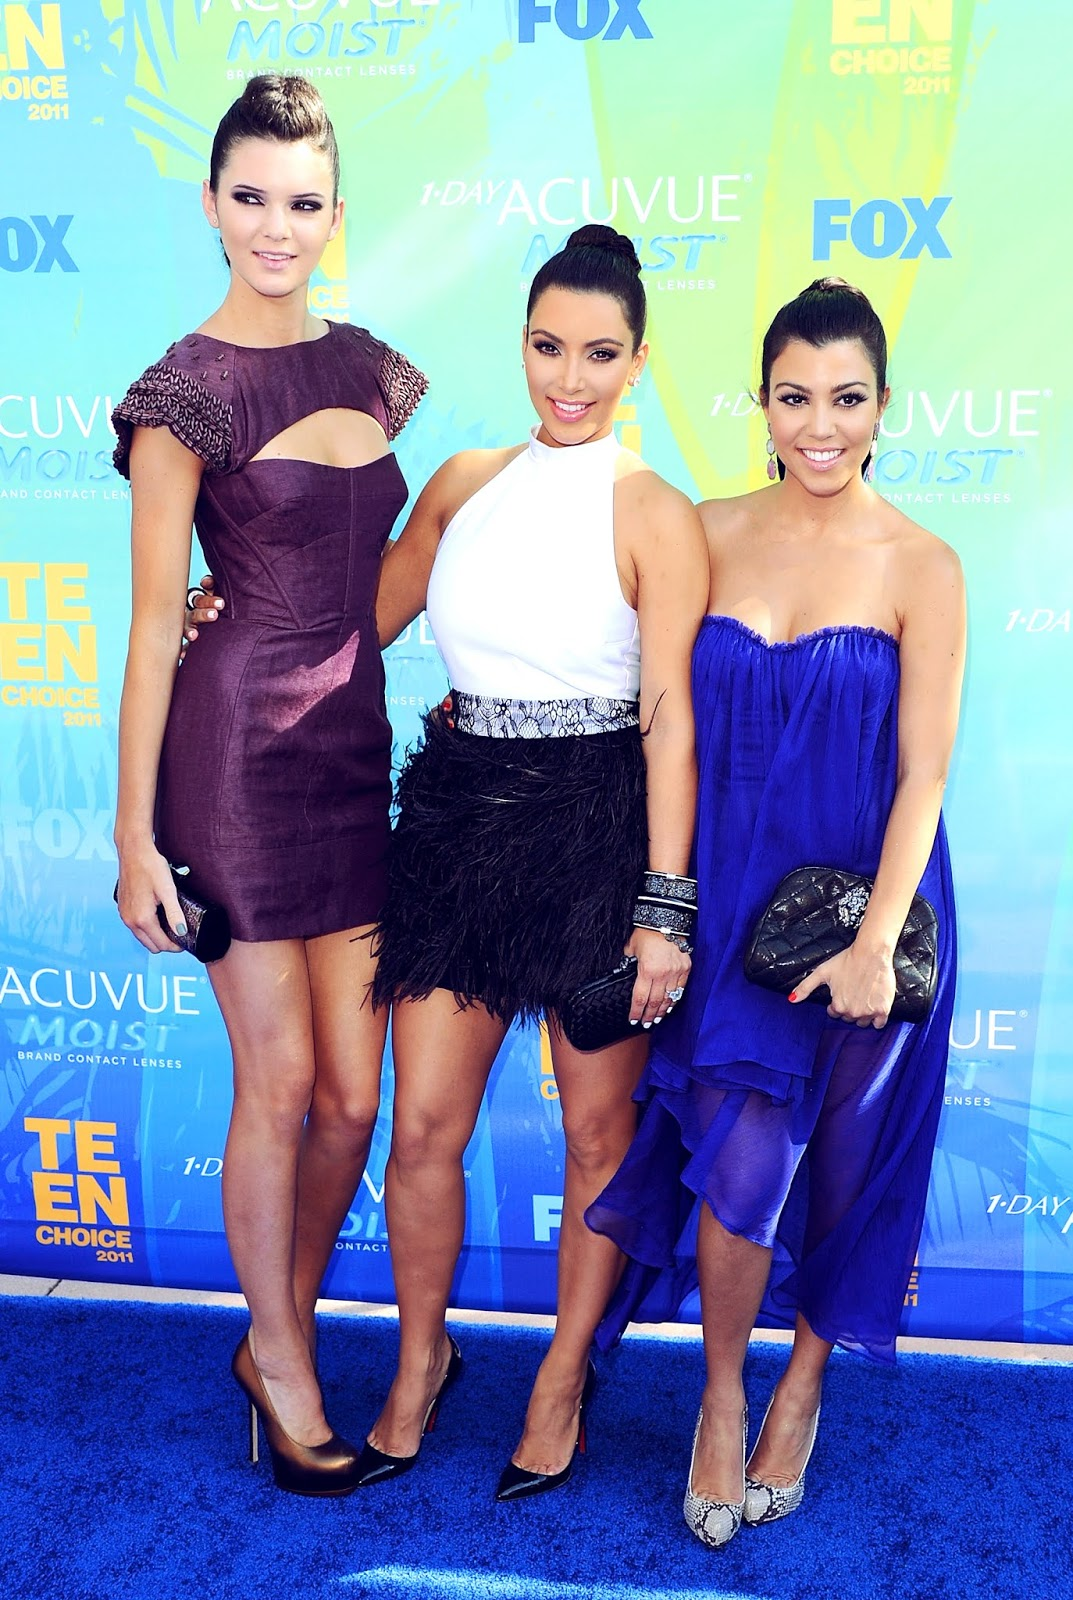 18- Teen Choice Awards in August 11, 2011